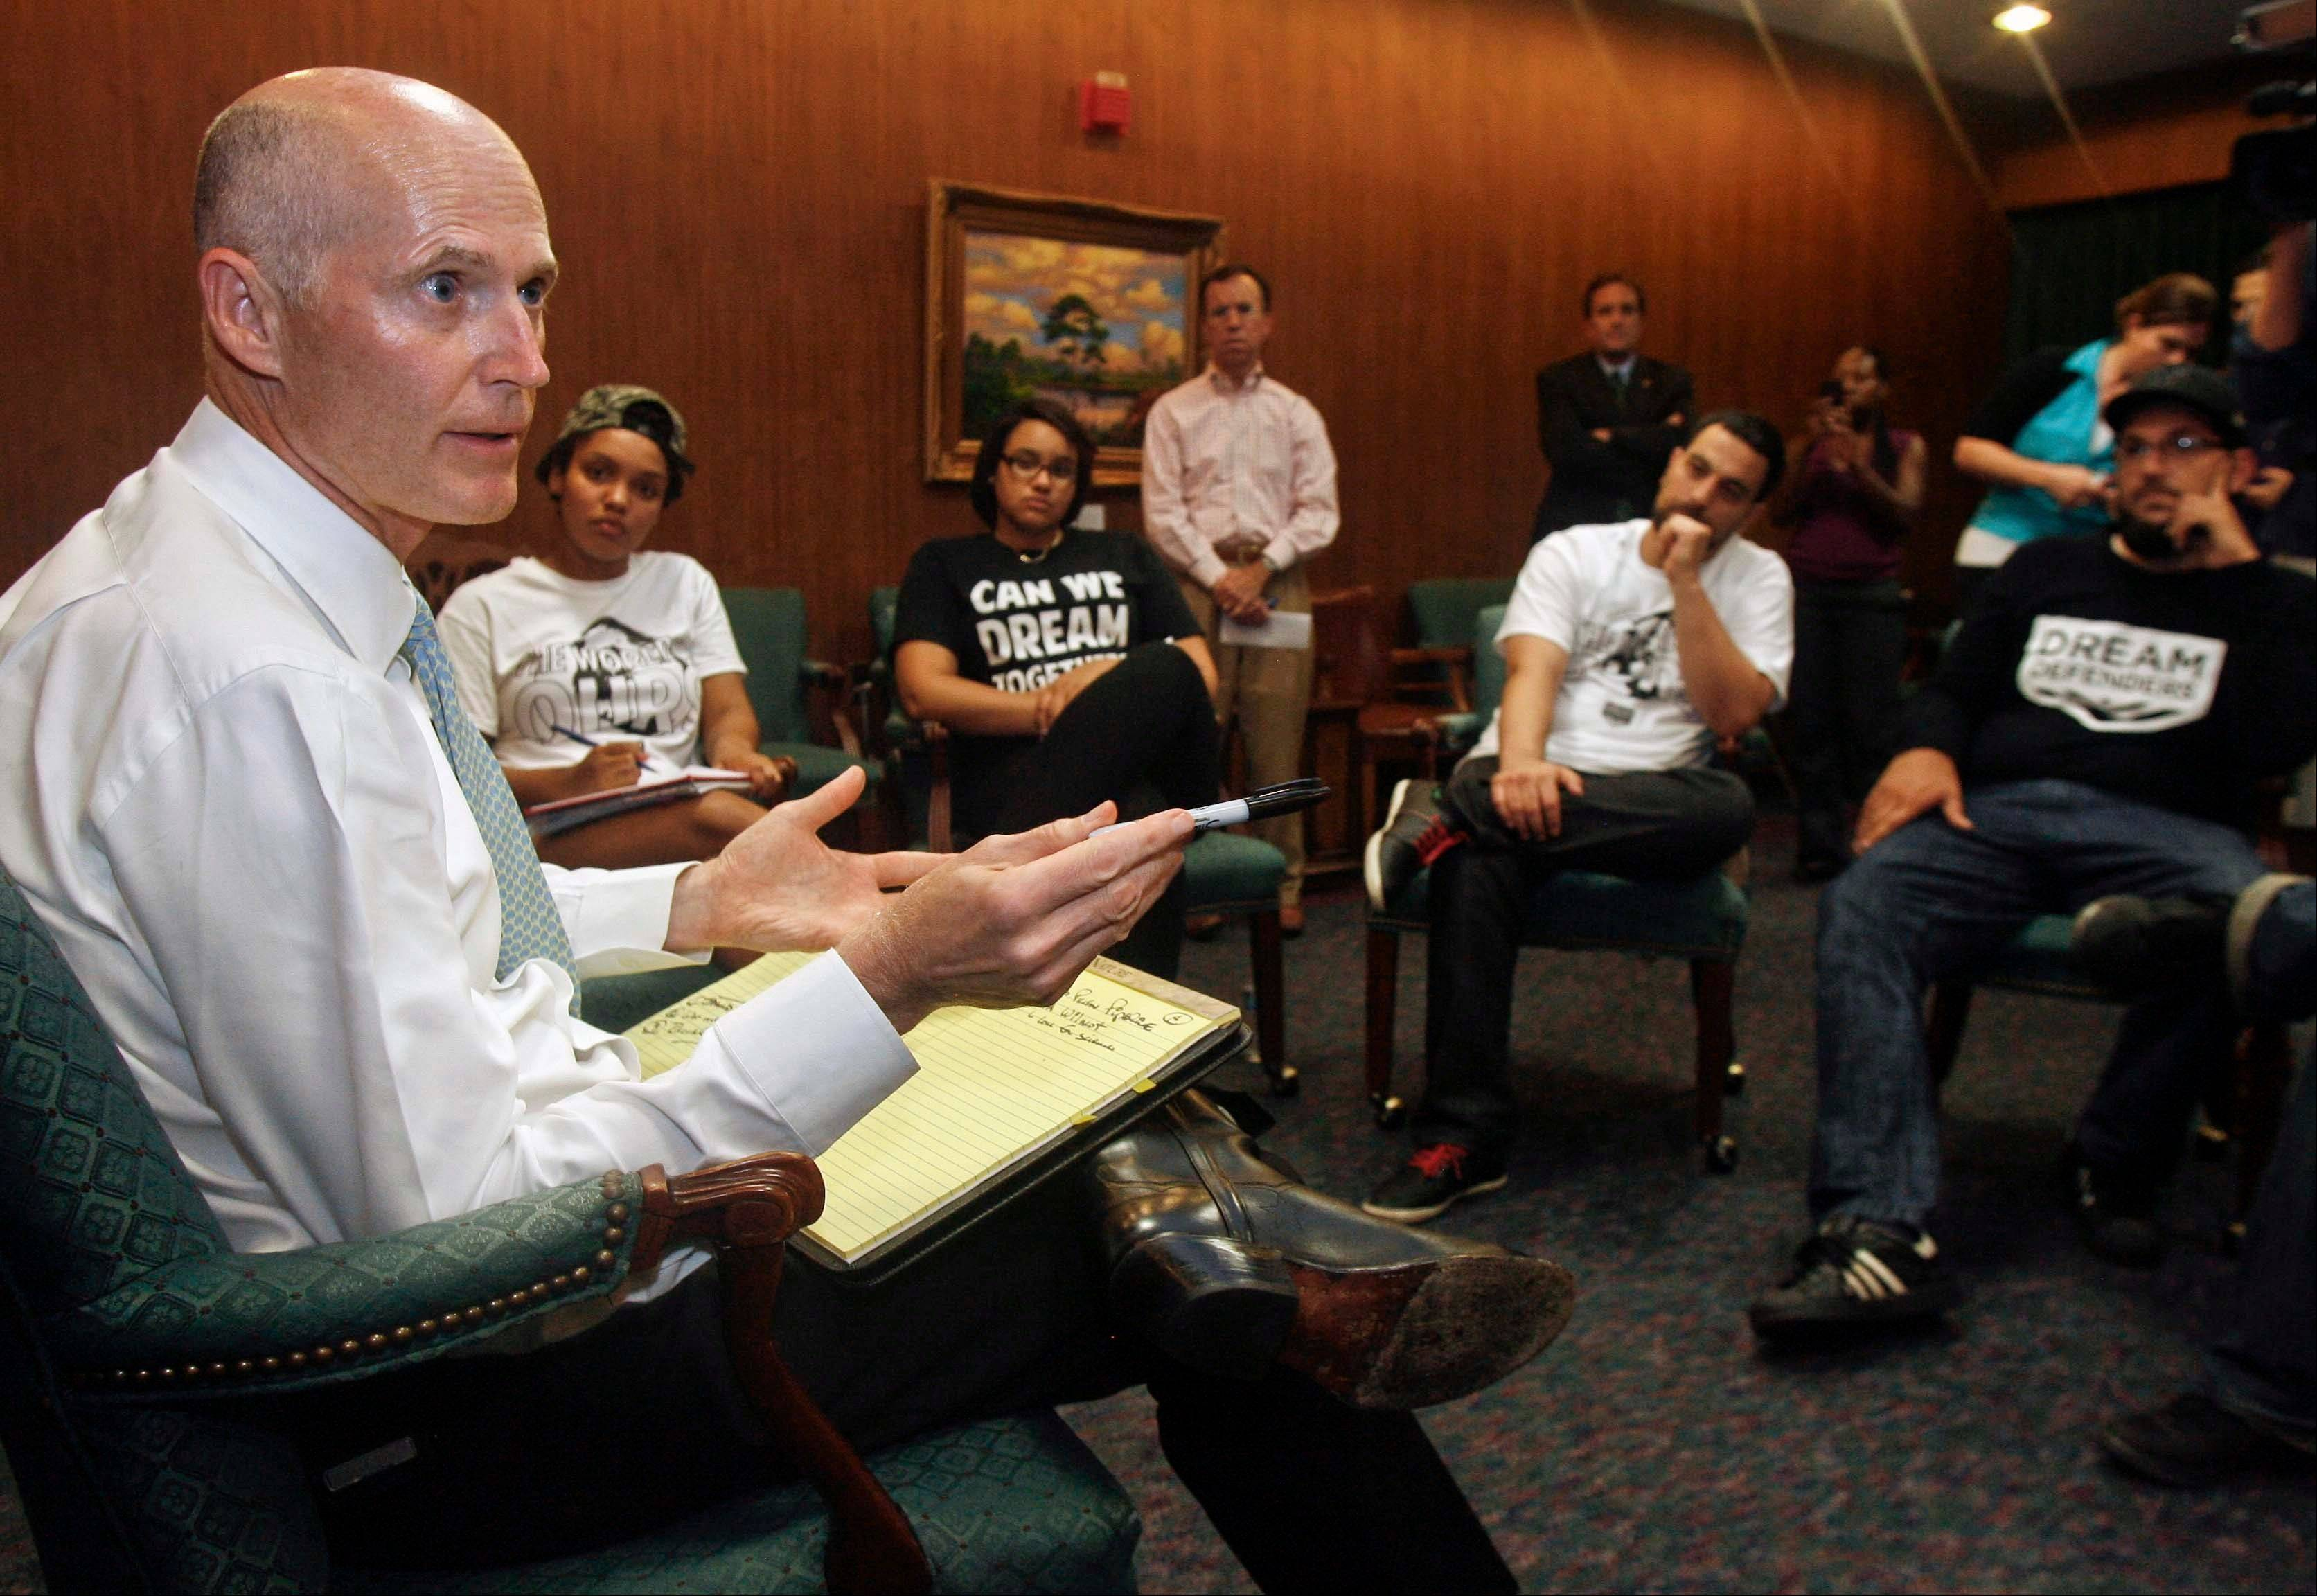 Florida Gov. Rick Scott told protesters he will not ask lawmakers to revamp the state's self-defense laws.